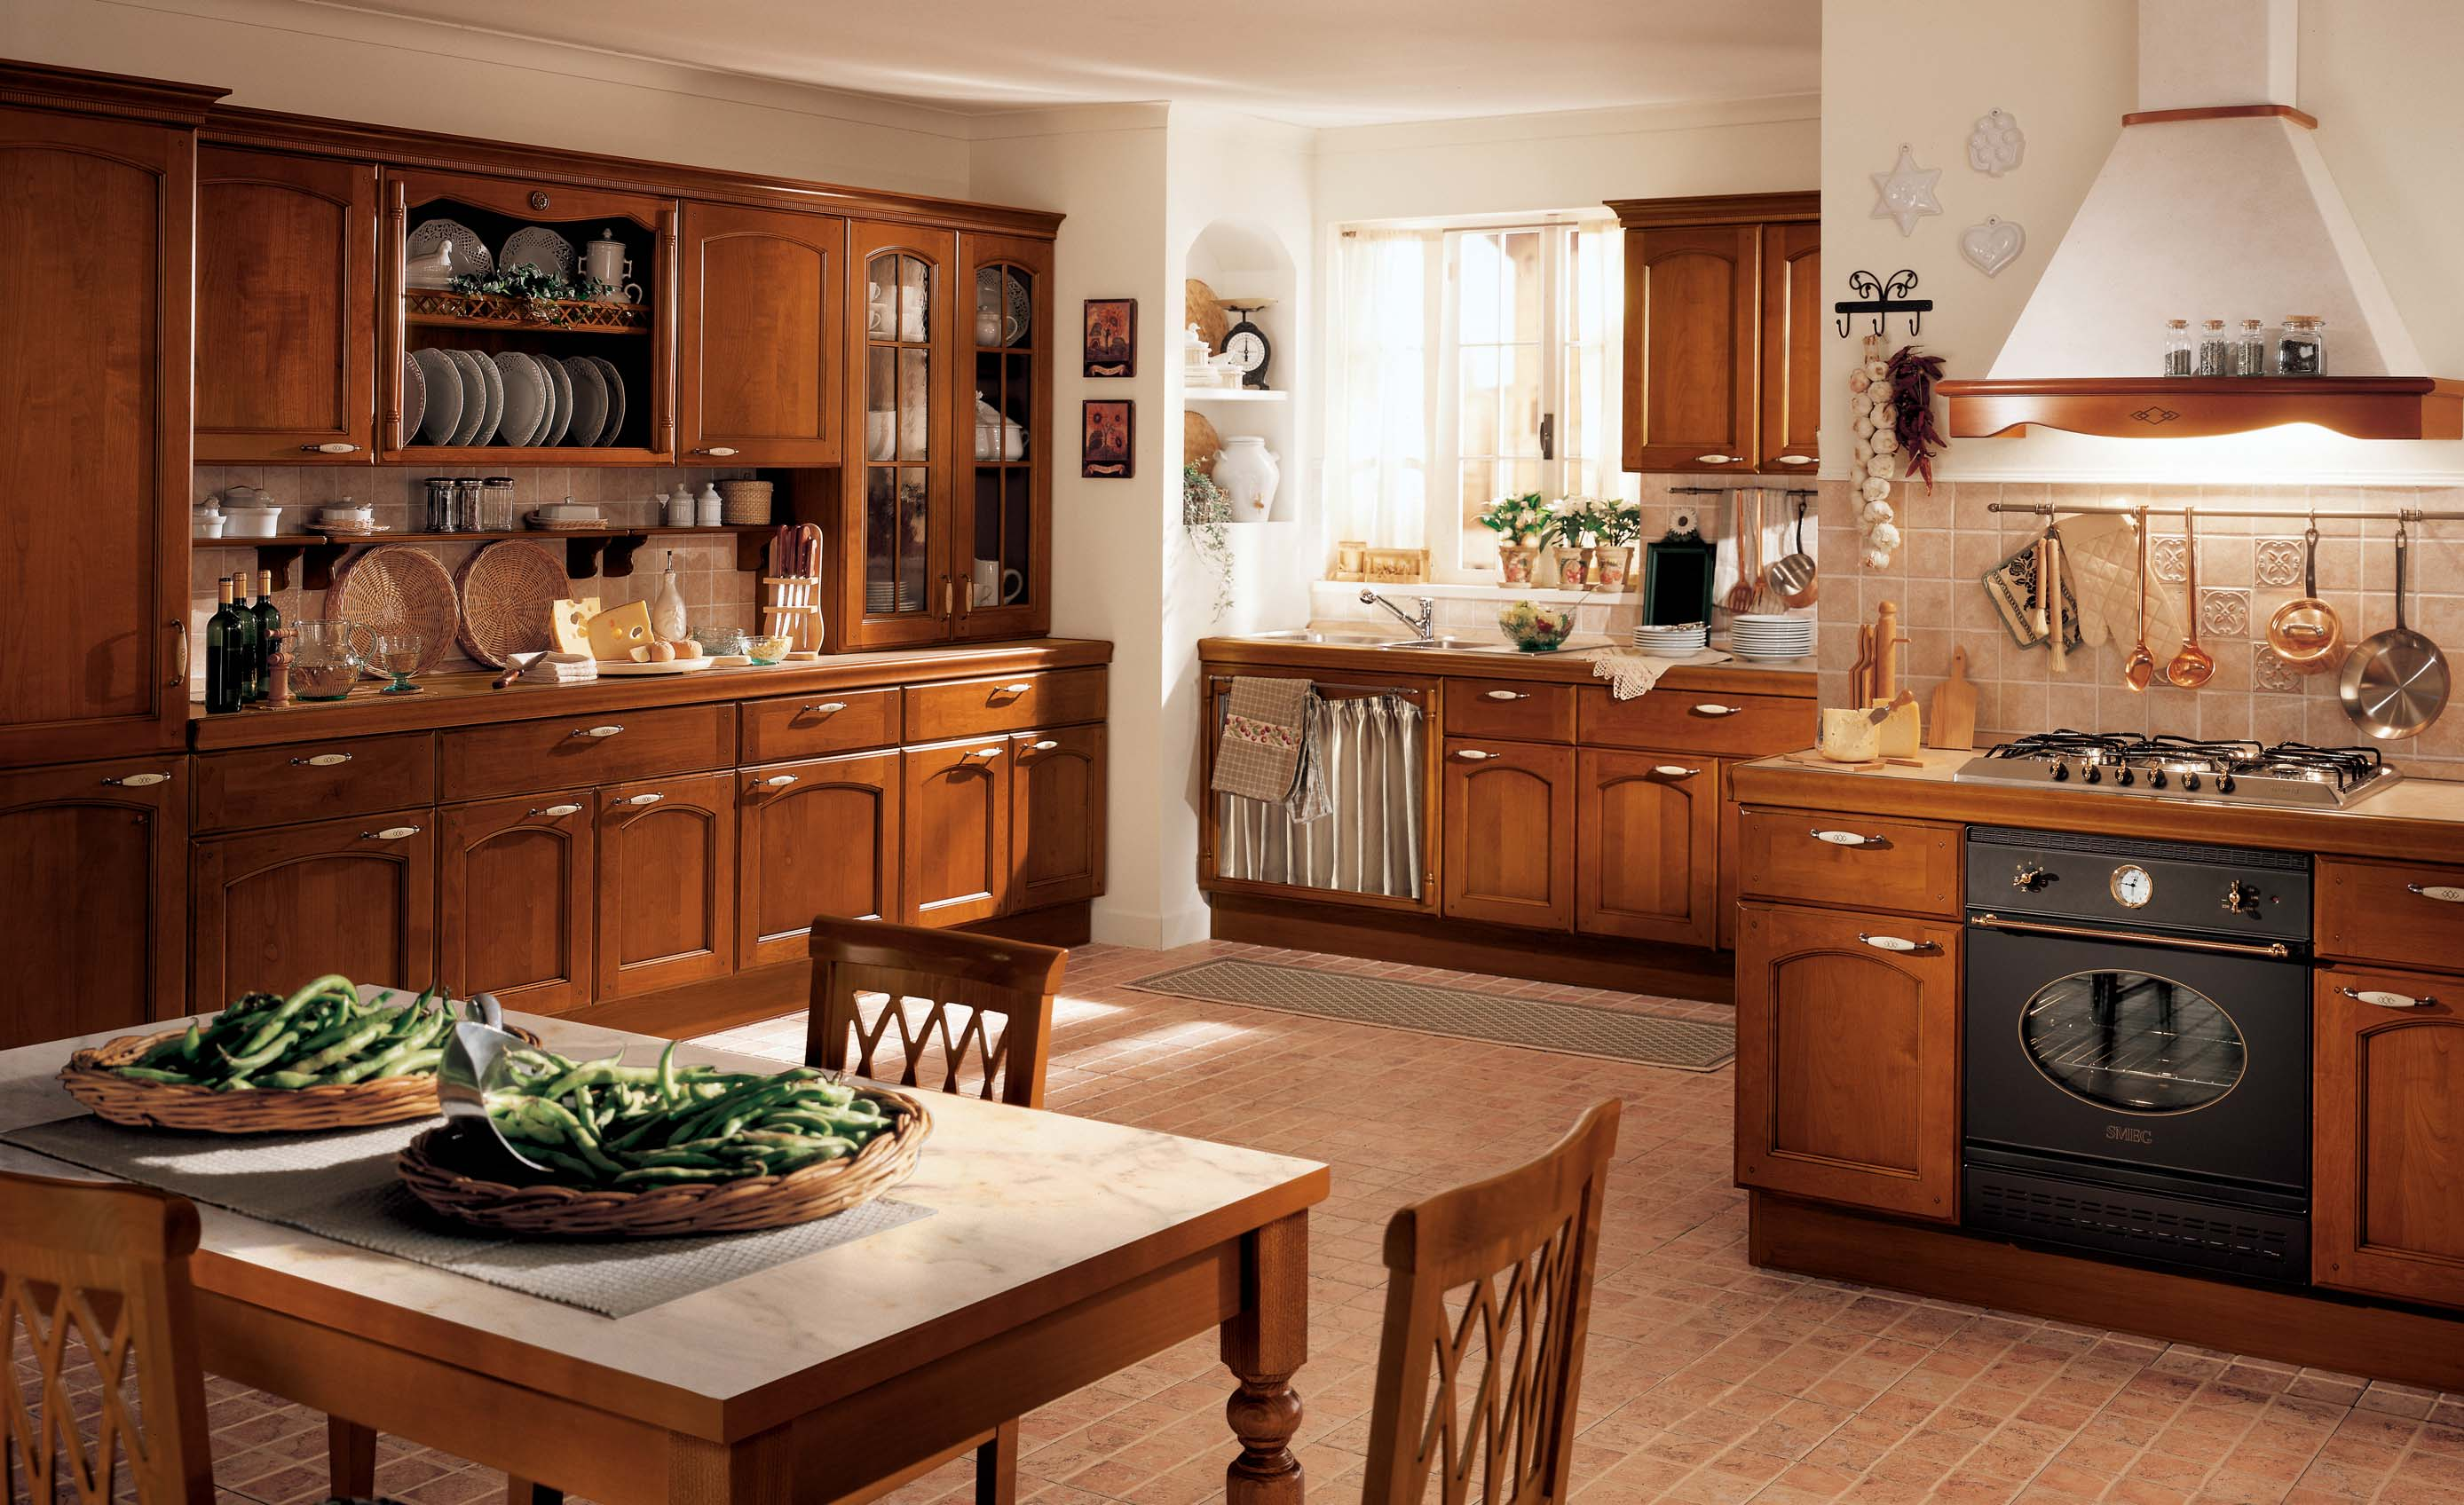 Home Depot Kitchen Design Gallery | HomesFeed